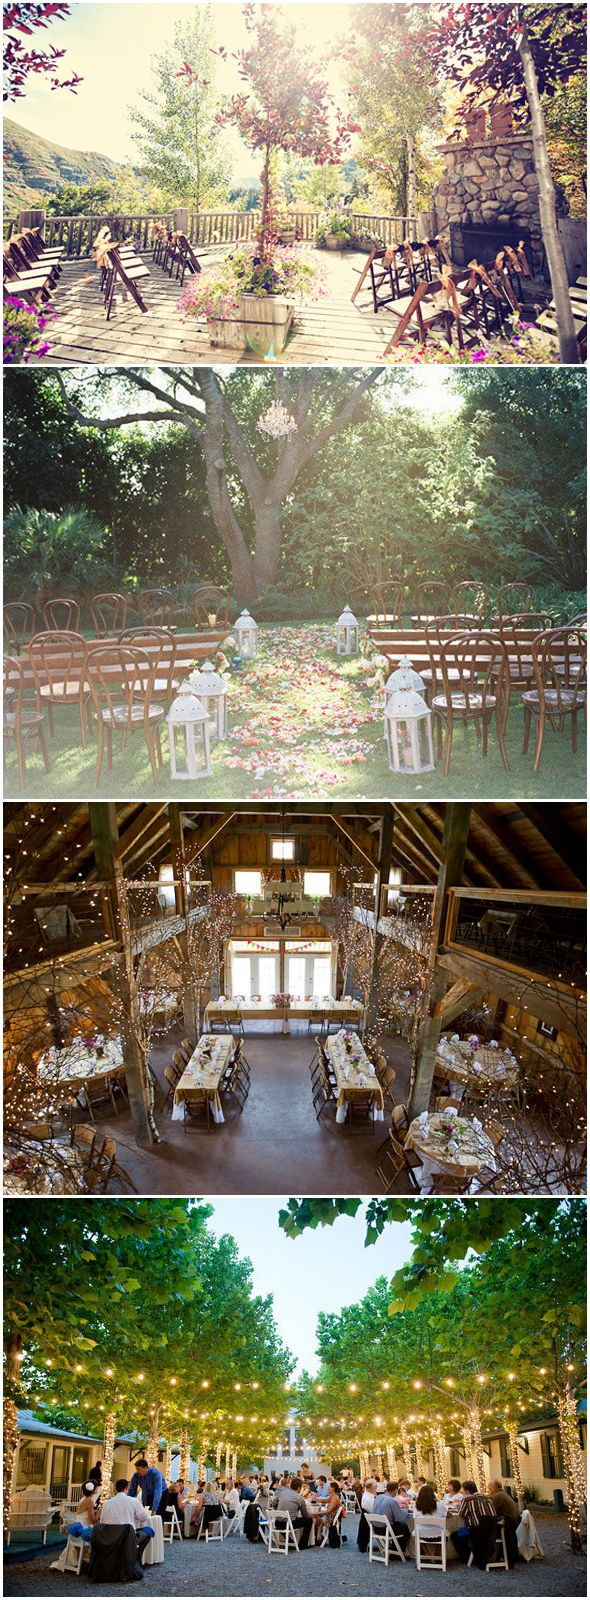 Beautiful outdoor wedding space(s).